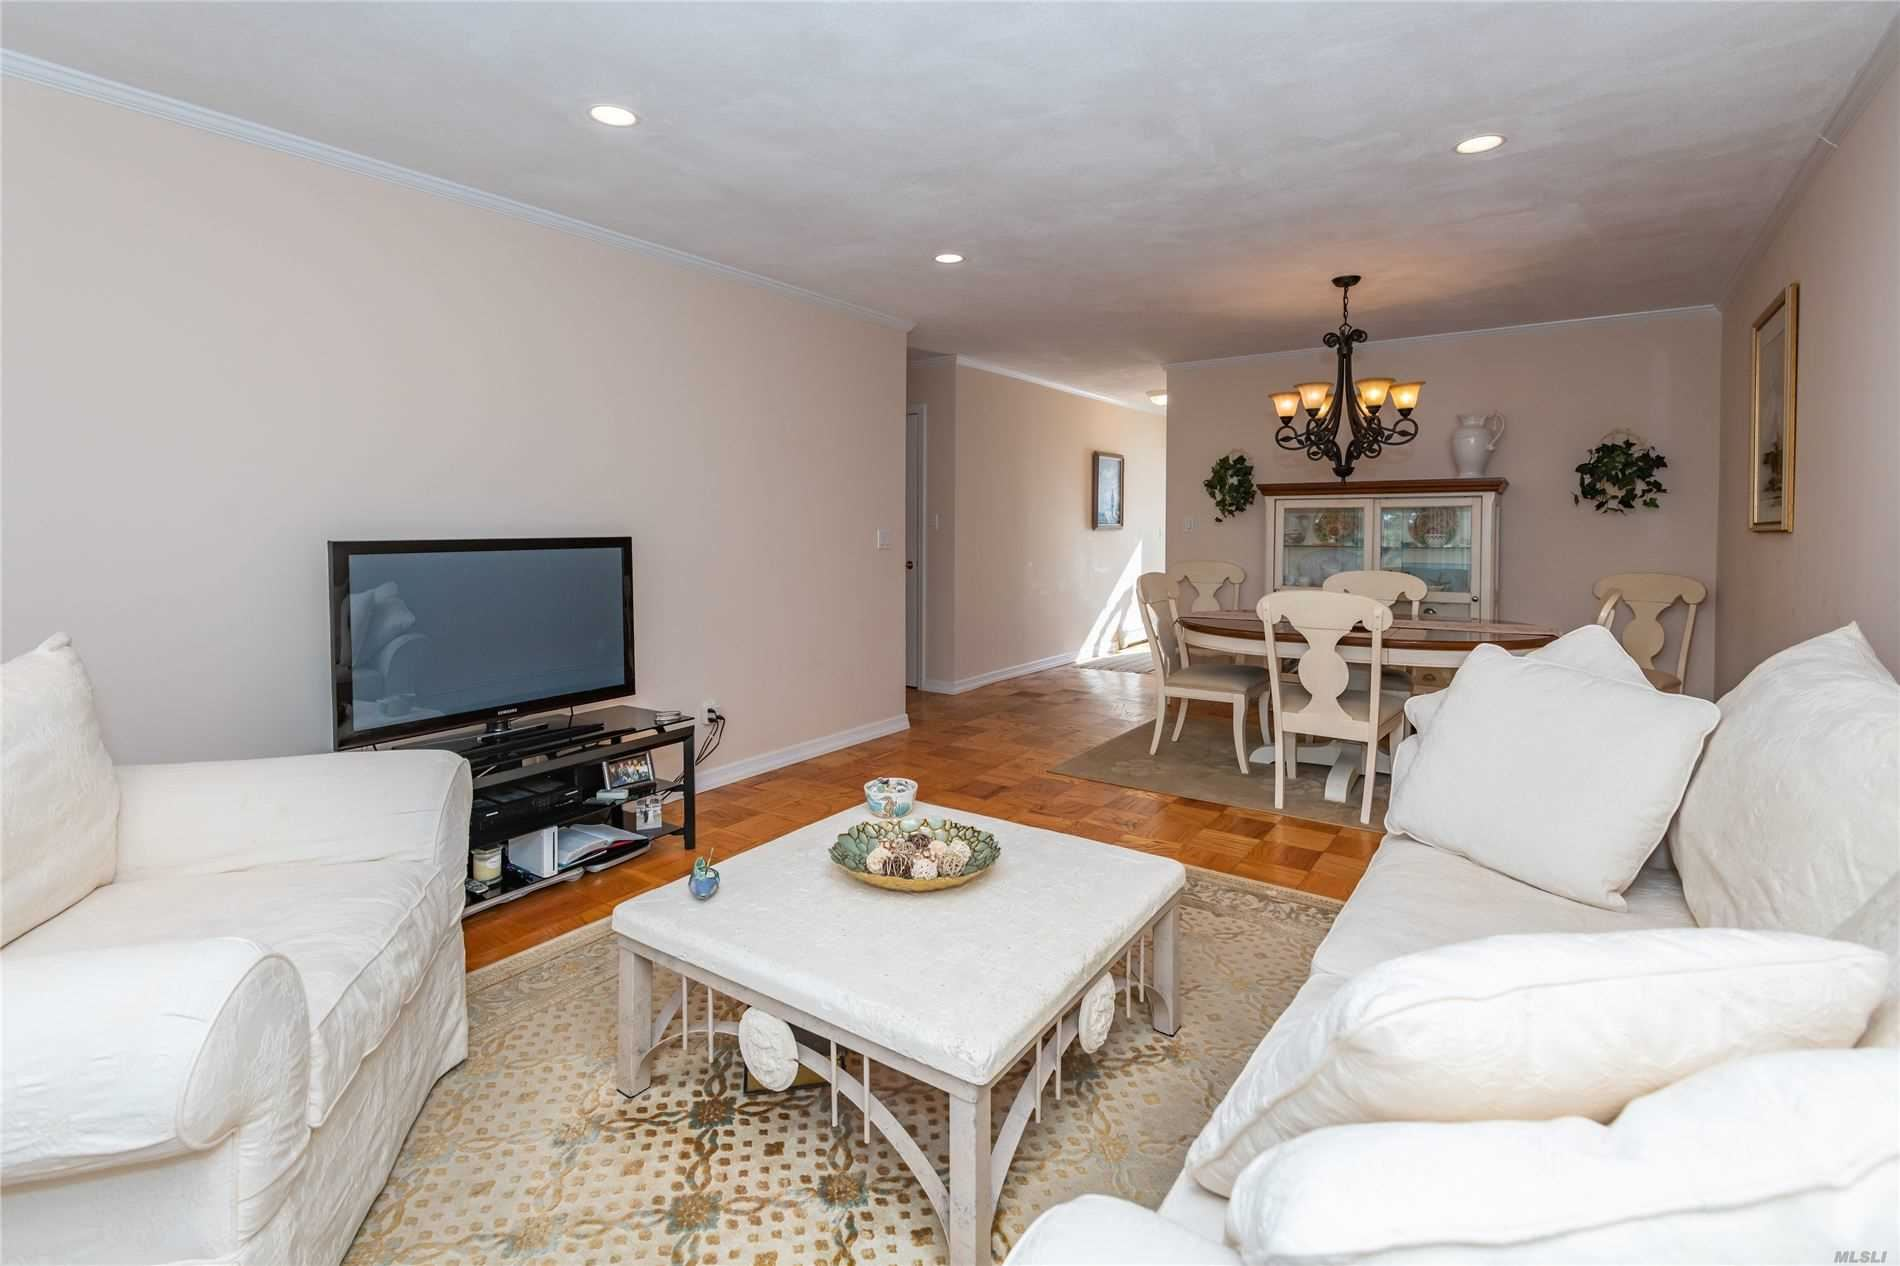 Photo of 11 Harbour Lane #1A, Oyster Bay, NY 11771 (MLS # 3234612)